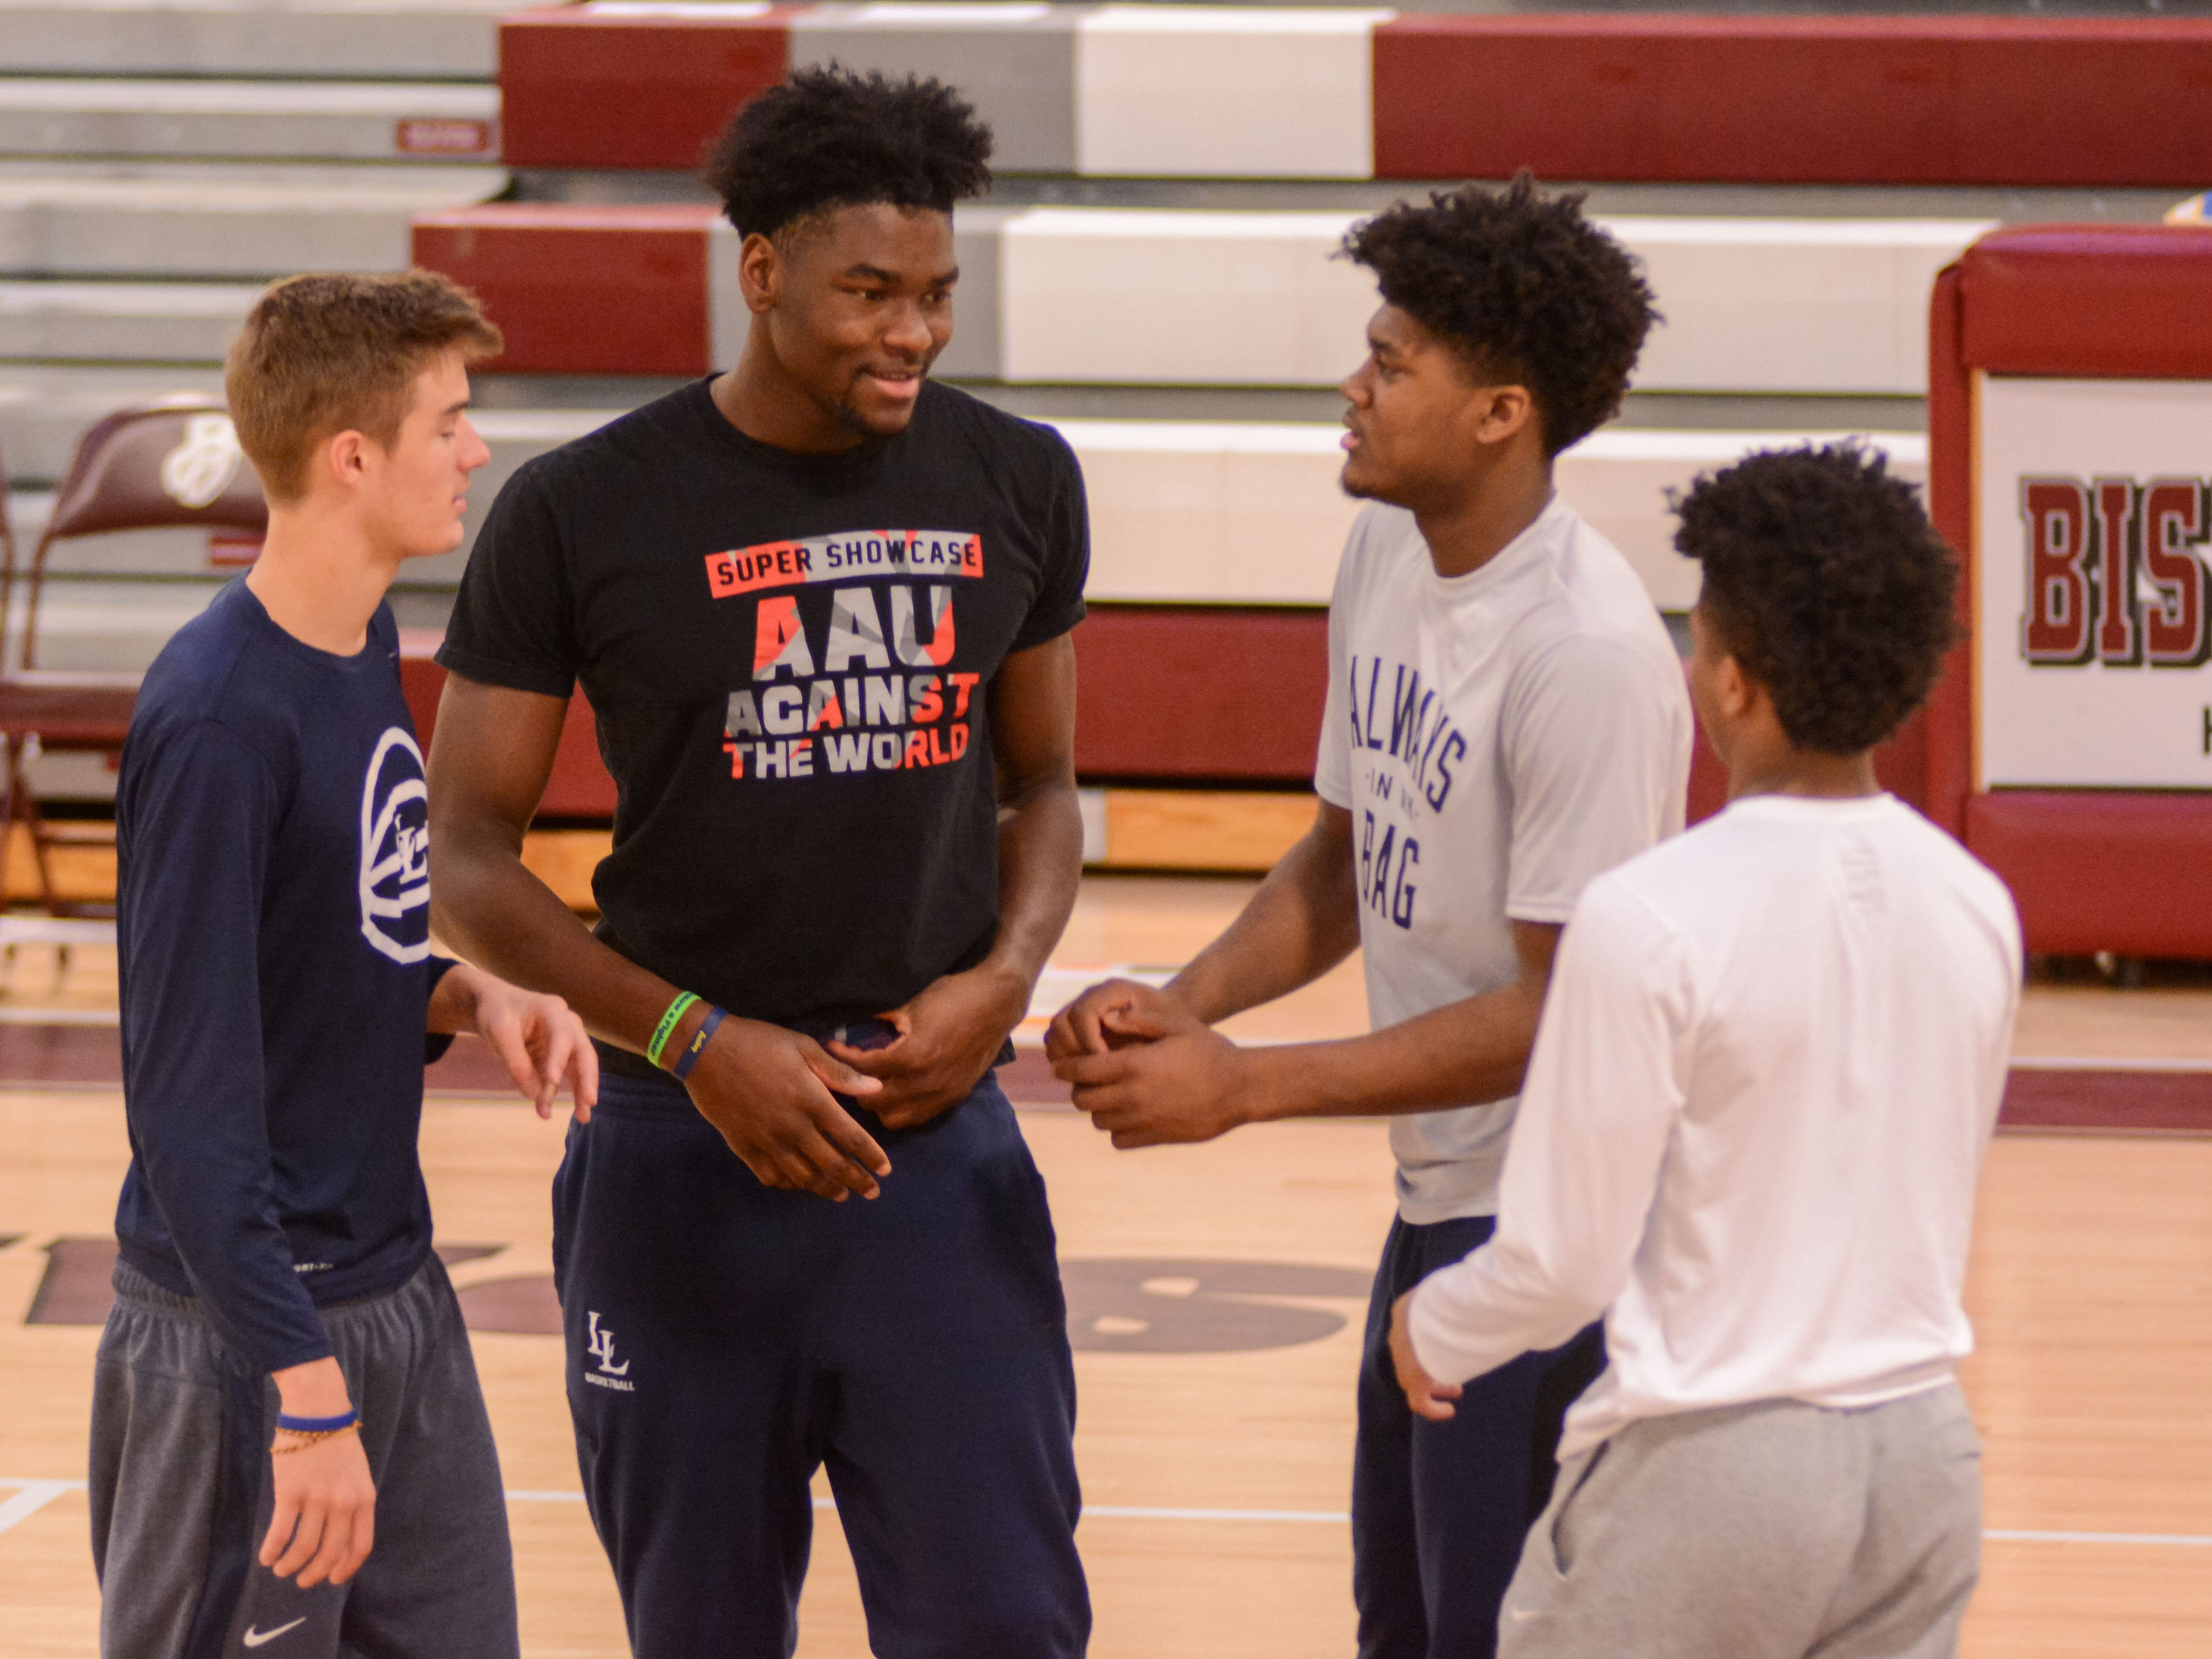 Isaiah Stewart, second from left, and Gerald Drumgoole, second from right, chat with teammates at the Bob Kirk Invitational in Cumberland, Maryland. Both Stewart and Drumgoole left Rochester to pursue their basketball dreams at the La Lumiere School in La Porte, Indiana.